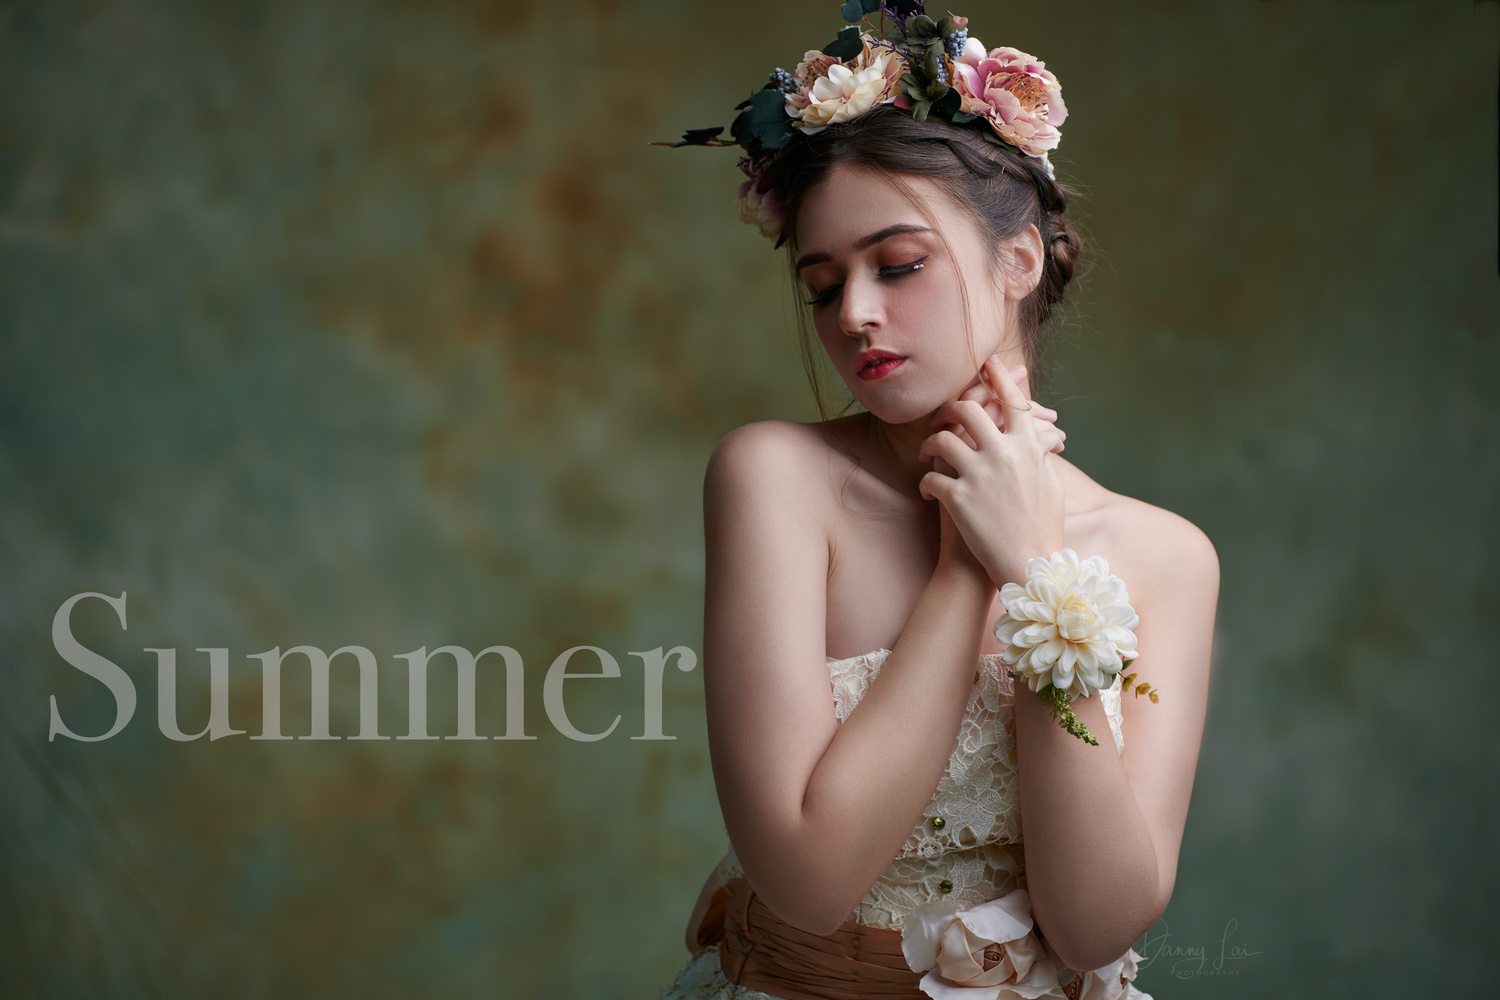 Summer Blossom Flower by Danny Lai